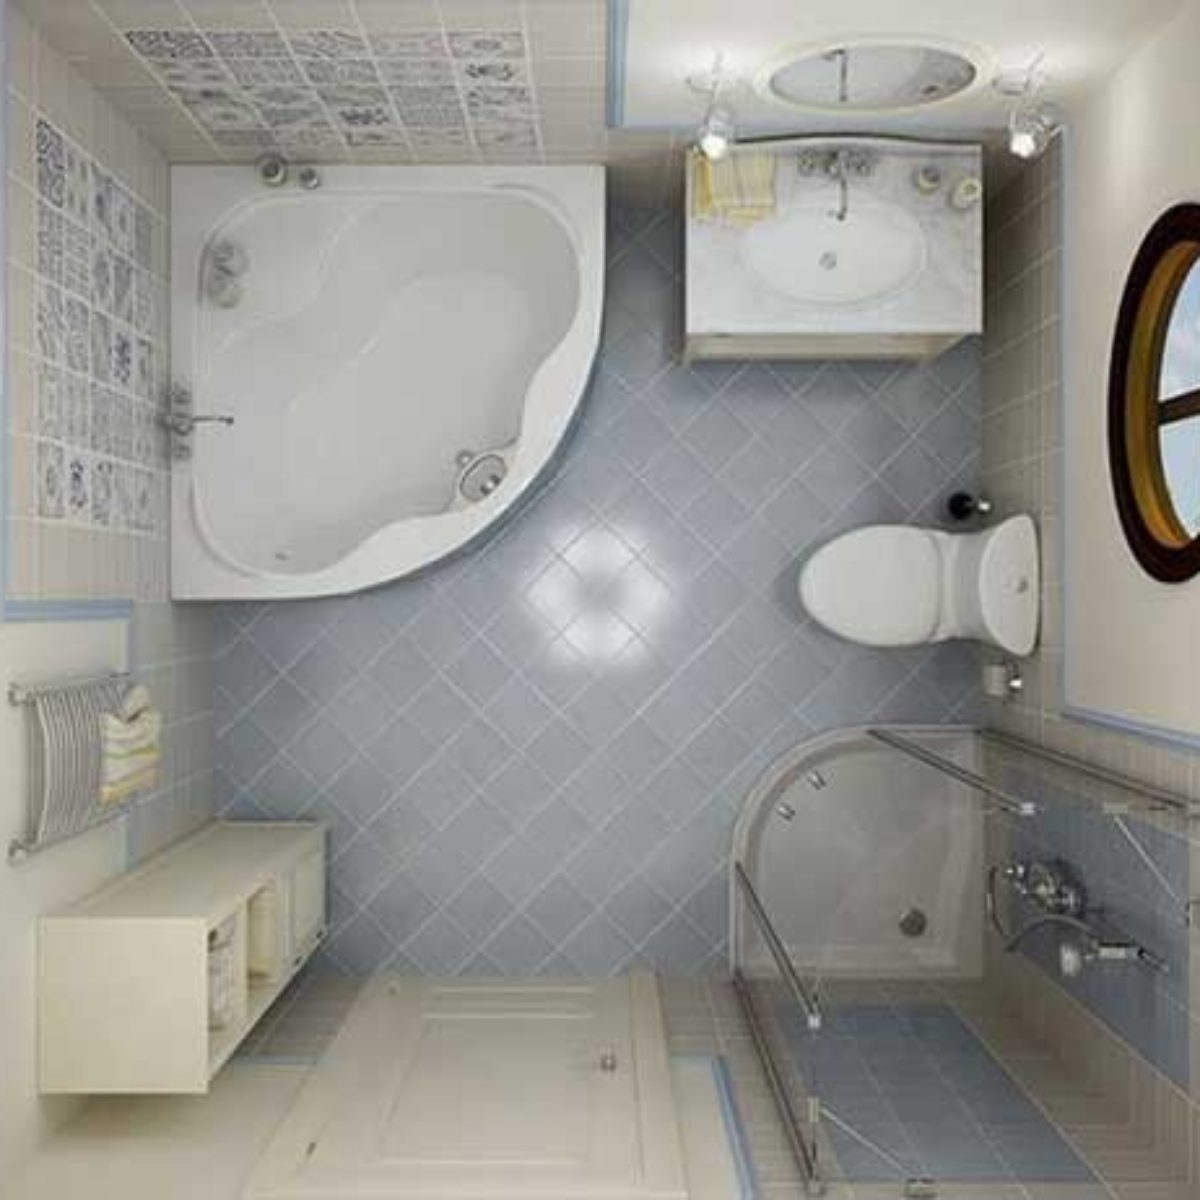 Bathroom Layout And Plan For Small Space Decorchamp 5Ft By 5Ft Bathroom Design